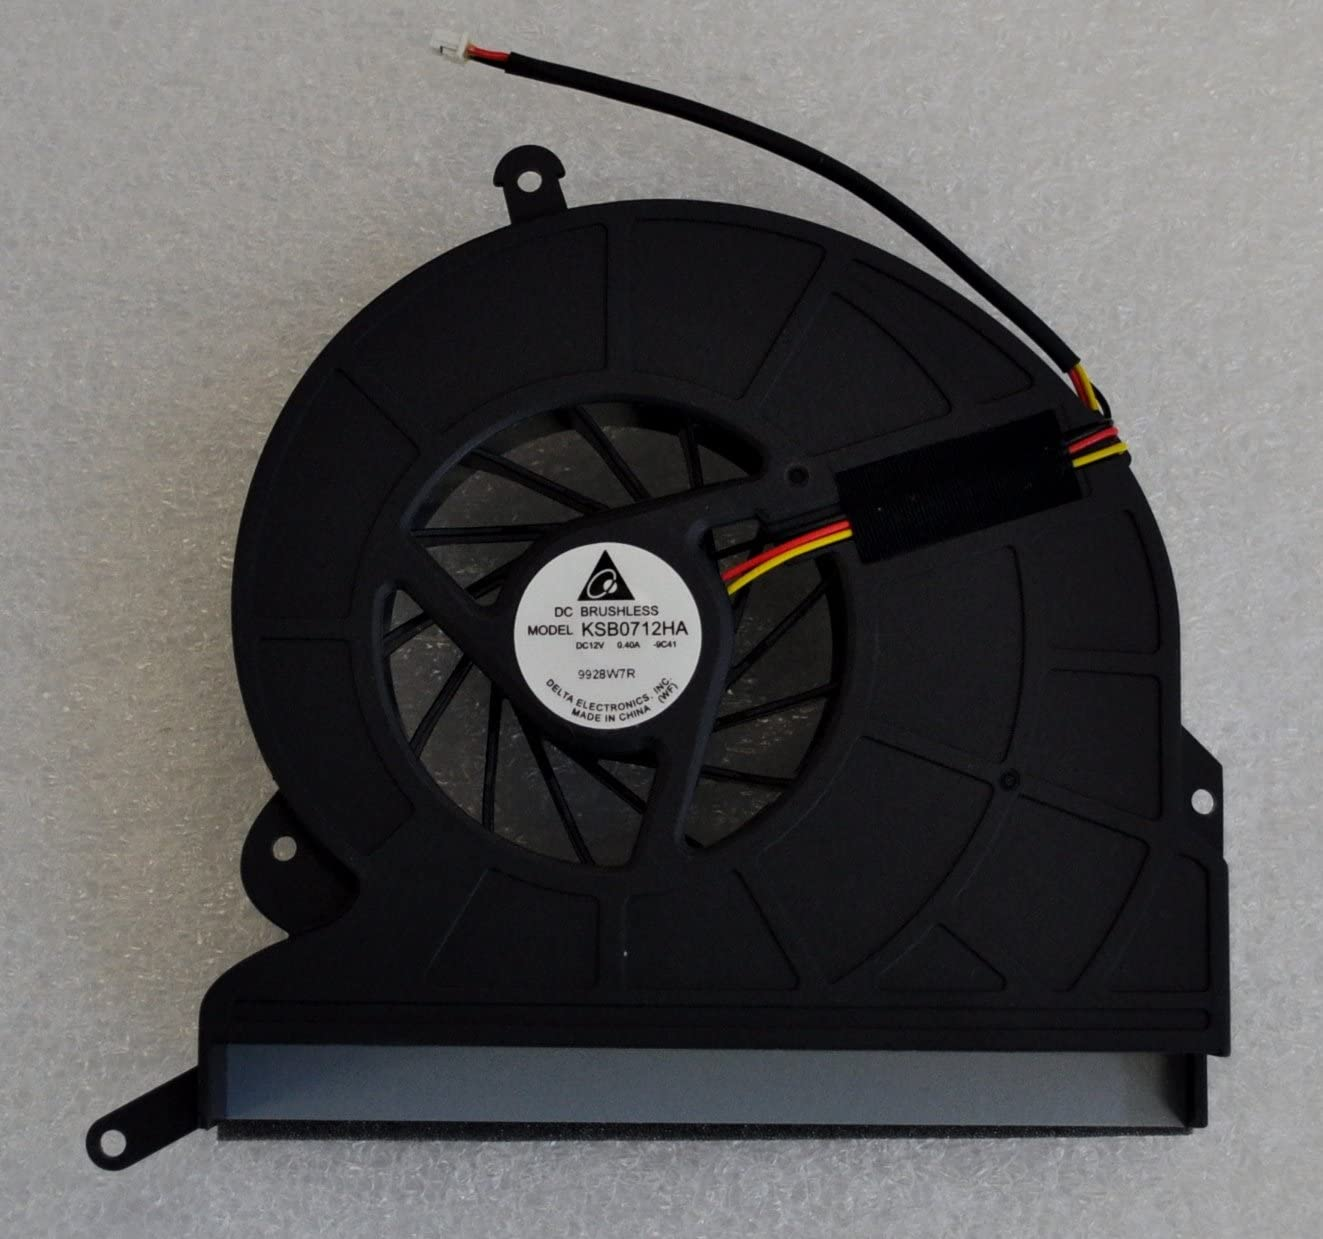 CPU Cooling Fan 537566-001 for HP Pavilion All-In-One MS200 MS218 MS220 MS225 MS235 PC